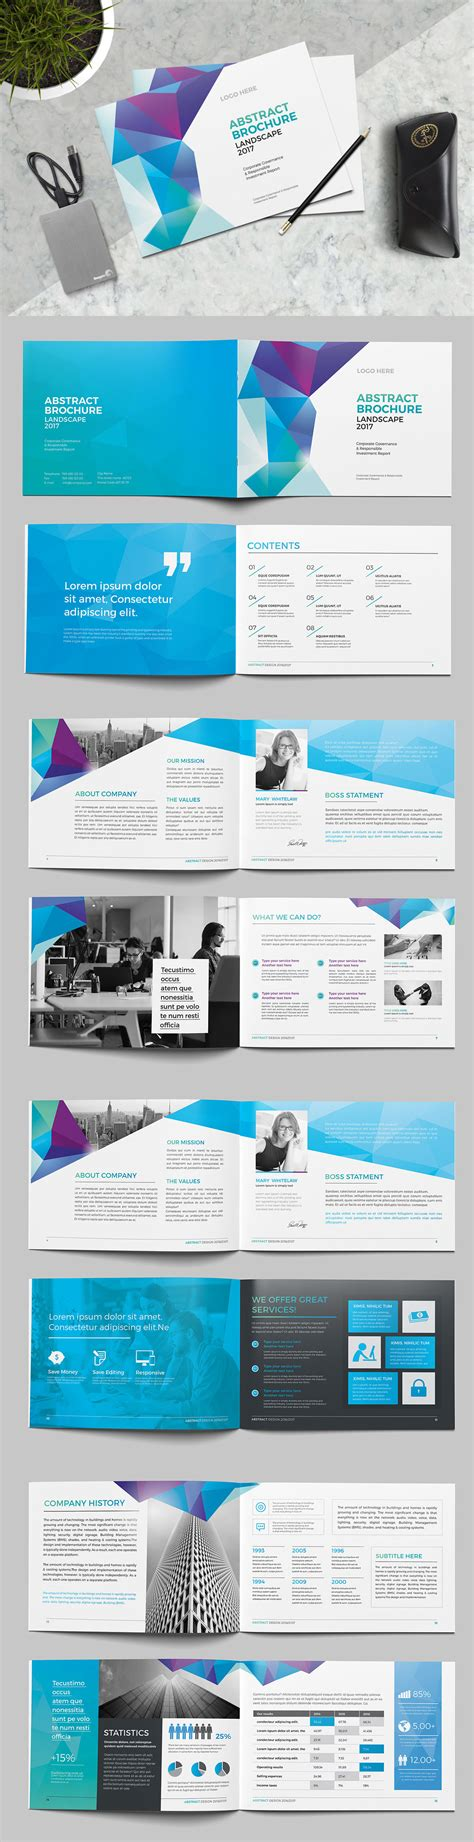 Abstract Landscape Brochure Template Indesign Indd Brochure Design Templates Brochure Indesign Landscape Template